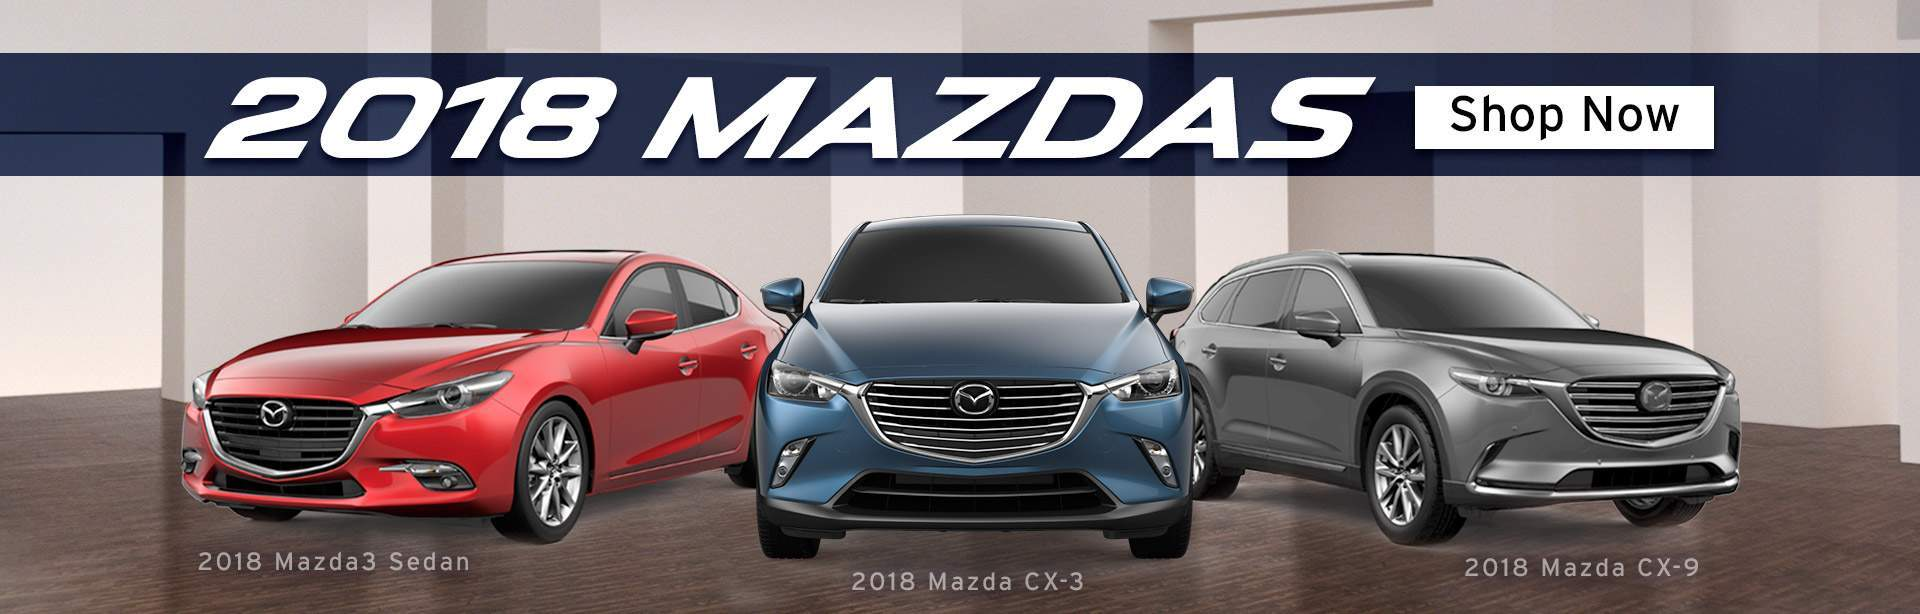 Mazda Dealership Irvine CA Used Cars TuttleClick Mazda - Mazda dealerships los angeles